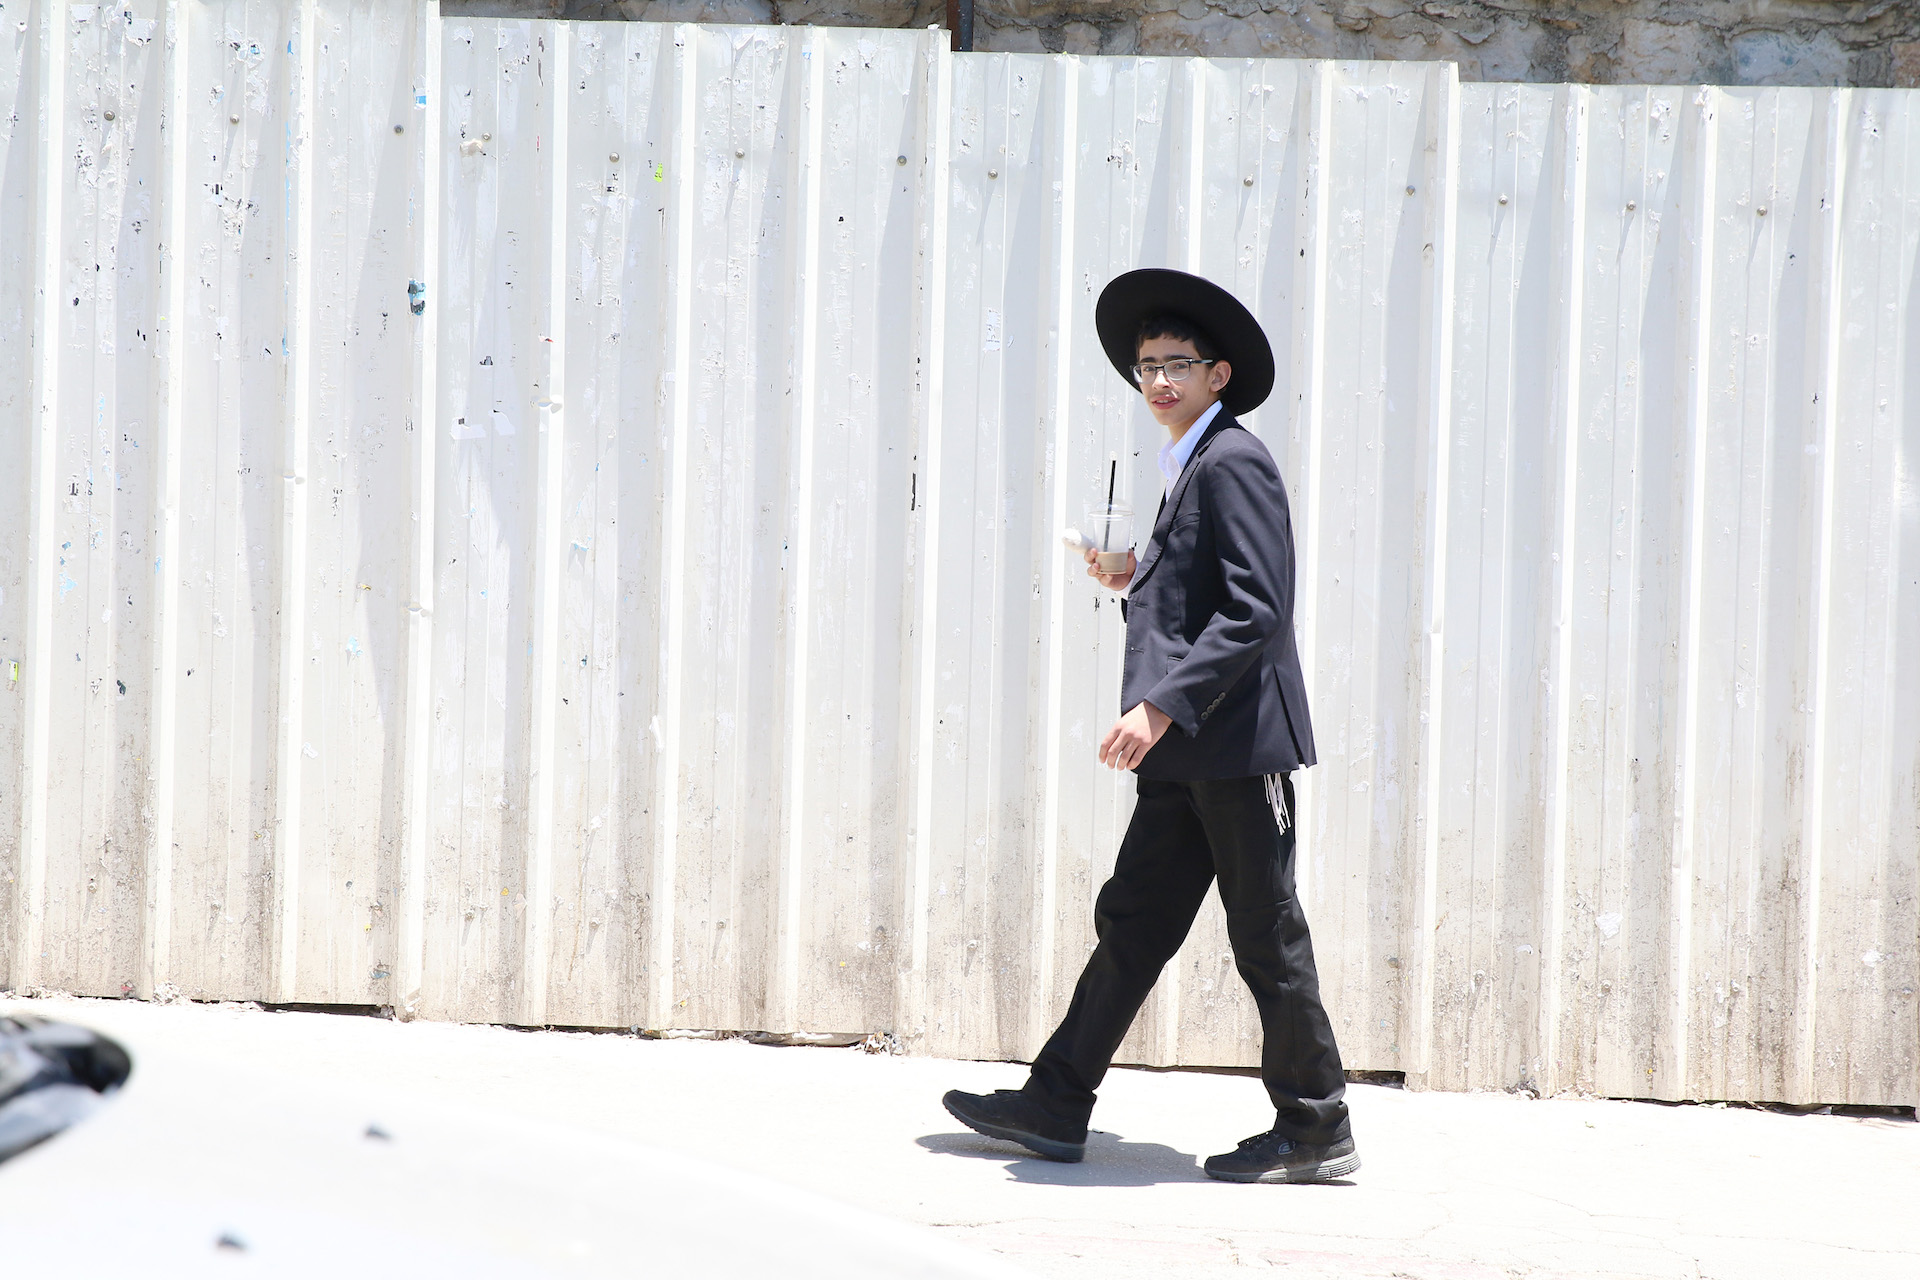 A young Haredi boy walks around the Mea Sharim neighborhood in Jerusalem. Mea Sharim is populated mostly by Haredi Jews, a strictly orthodox group inclined to reject modern secular strains of juadaism in favor of traditional practices. Christina Thornell/CUNY J